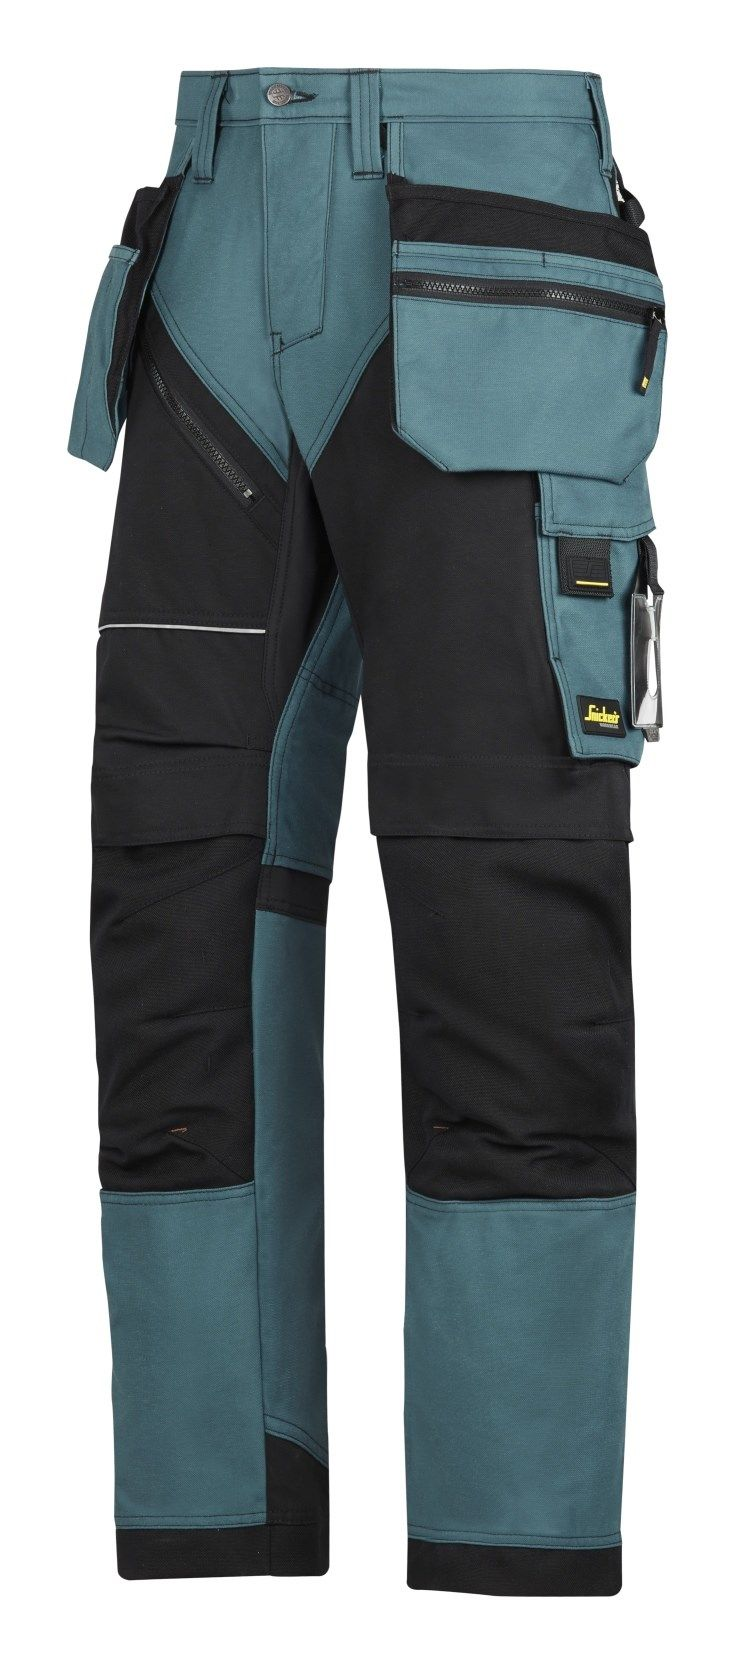 Tough design for rough work. Modern heavy-duty work #trousers combining amazing fit with reinforced functionality. Features Cordura® 1000 reinforced knee #protection, built-in ventilation and stretch gusset in crotch for hardwearing comfort at work.